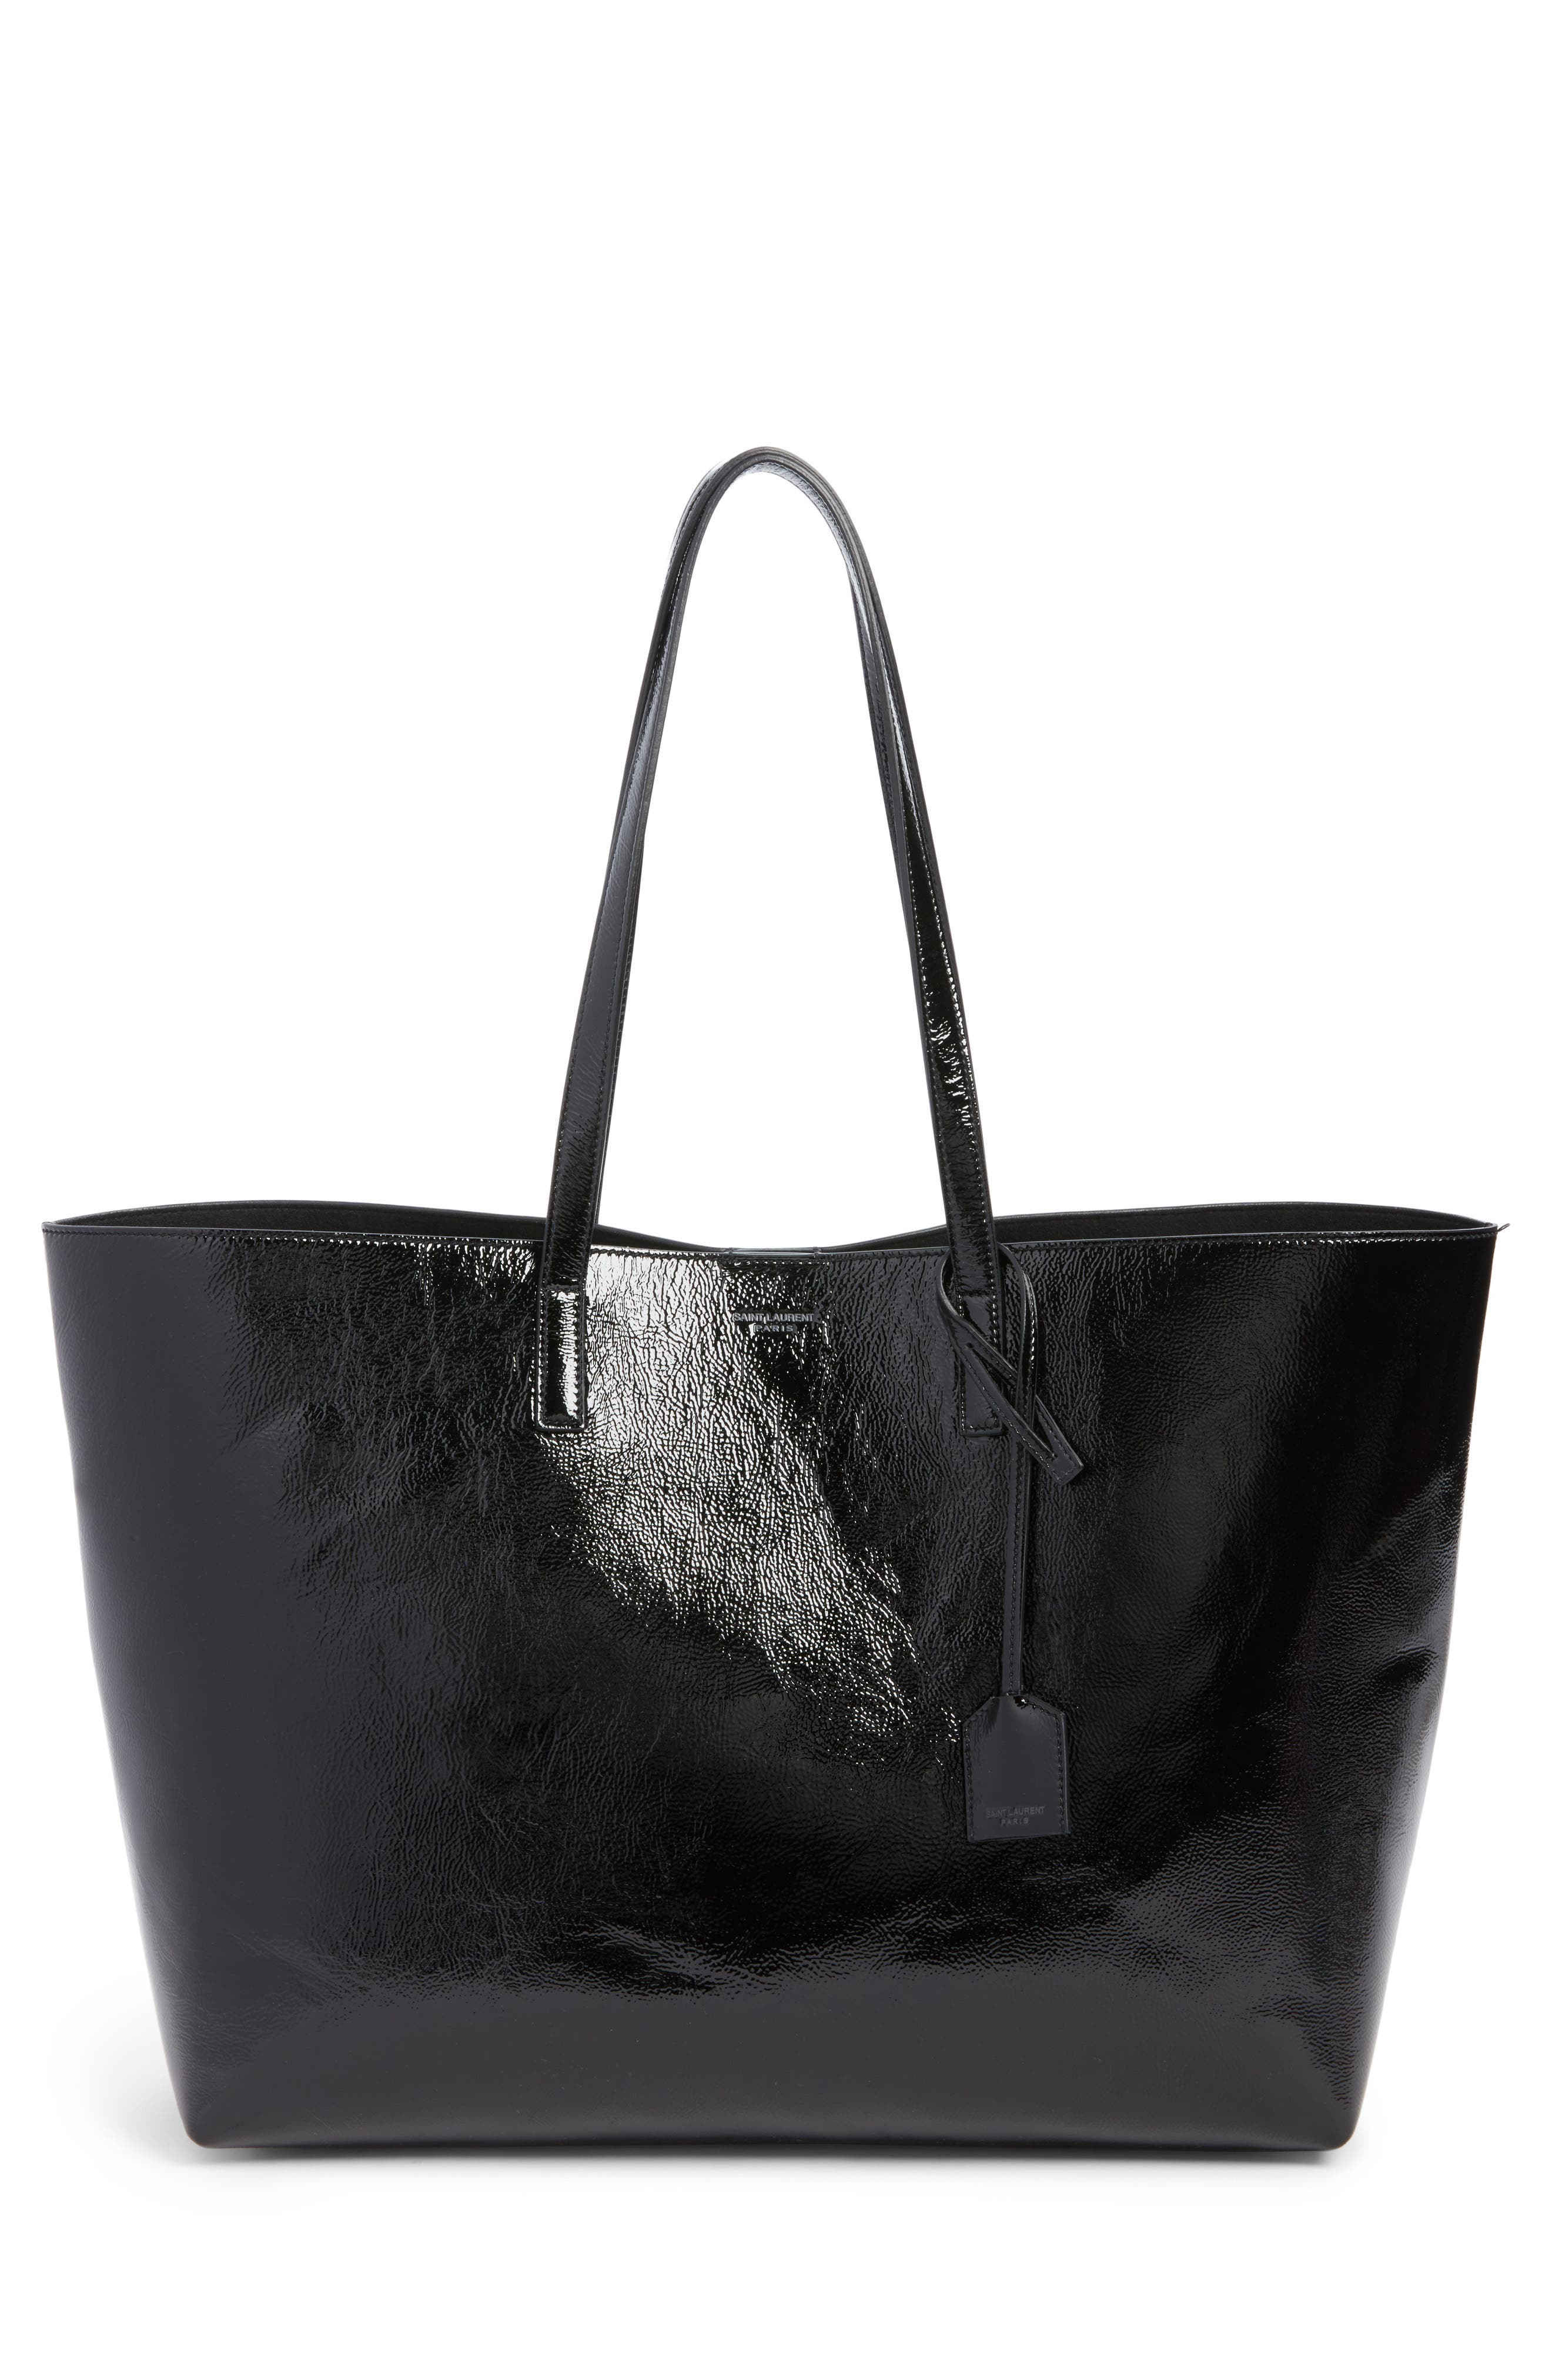 East/West Leather Tote,                             Main thumbnail 1, color,                             001